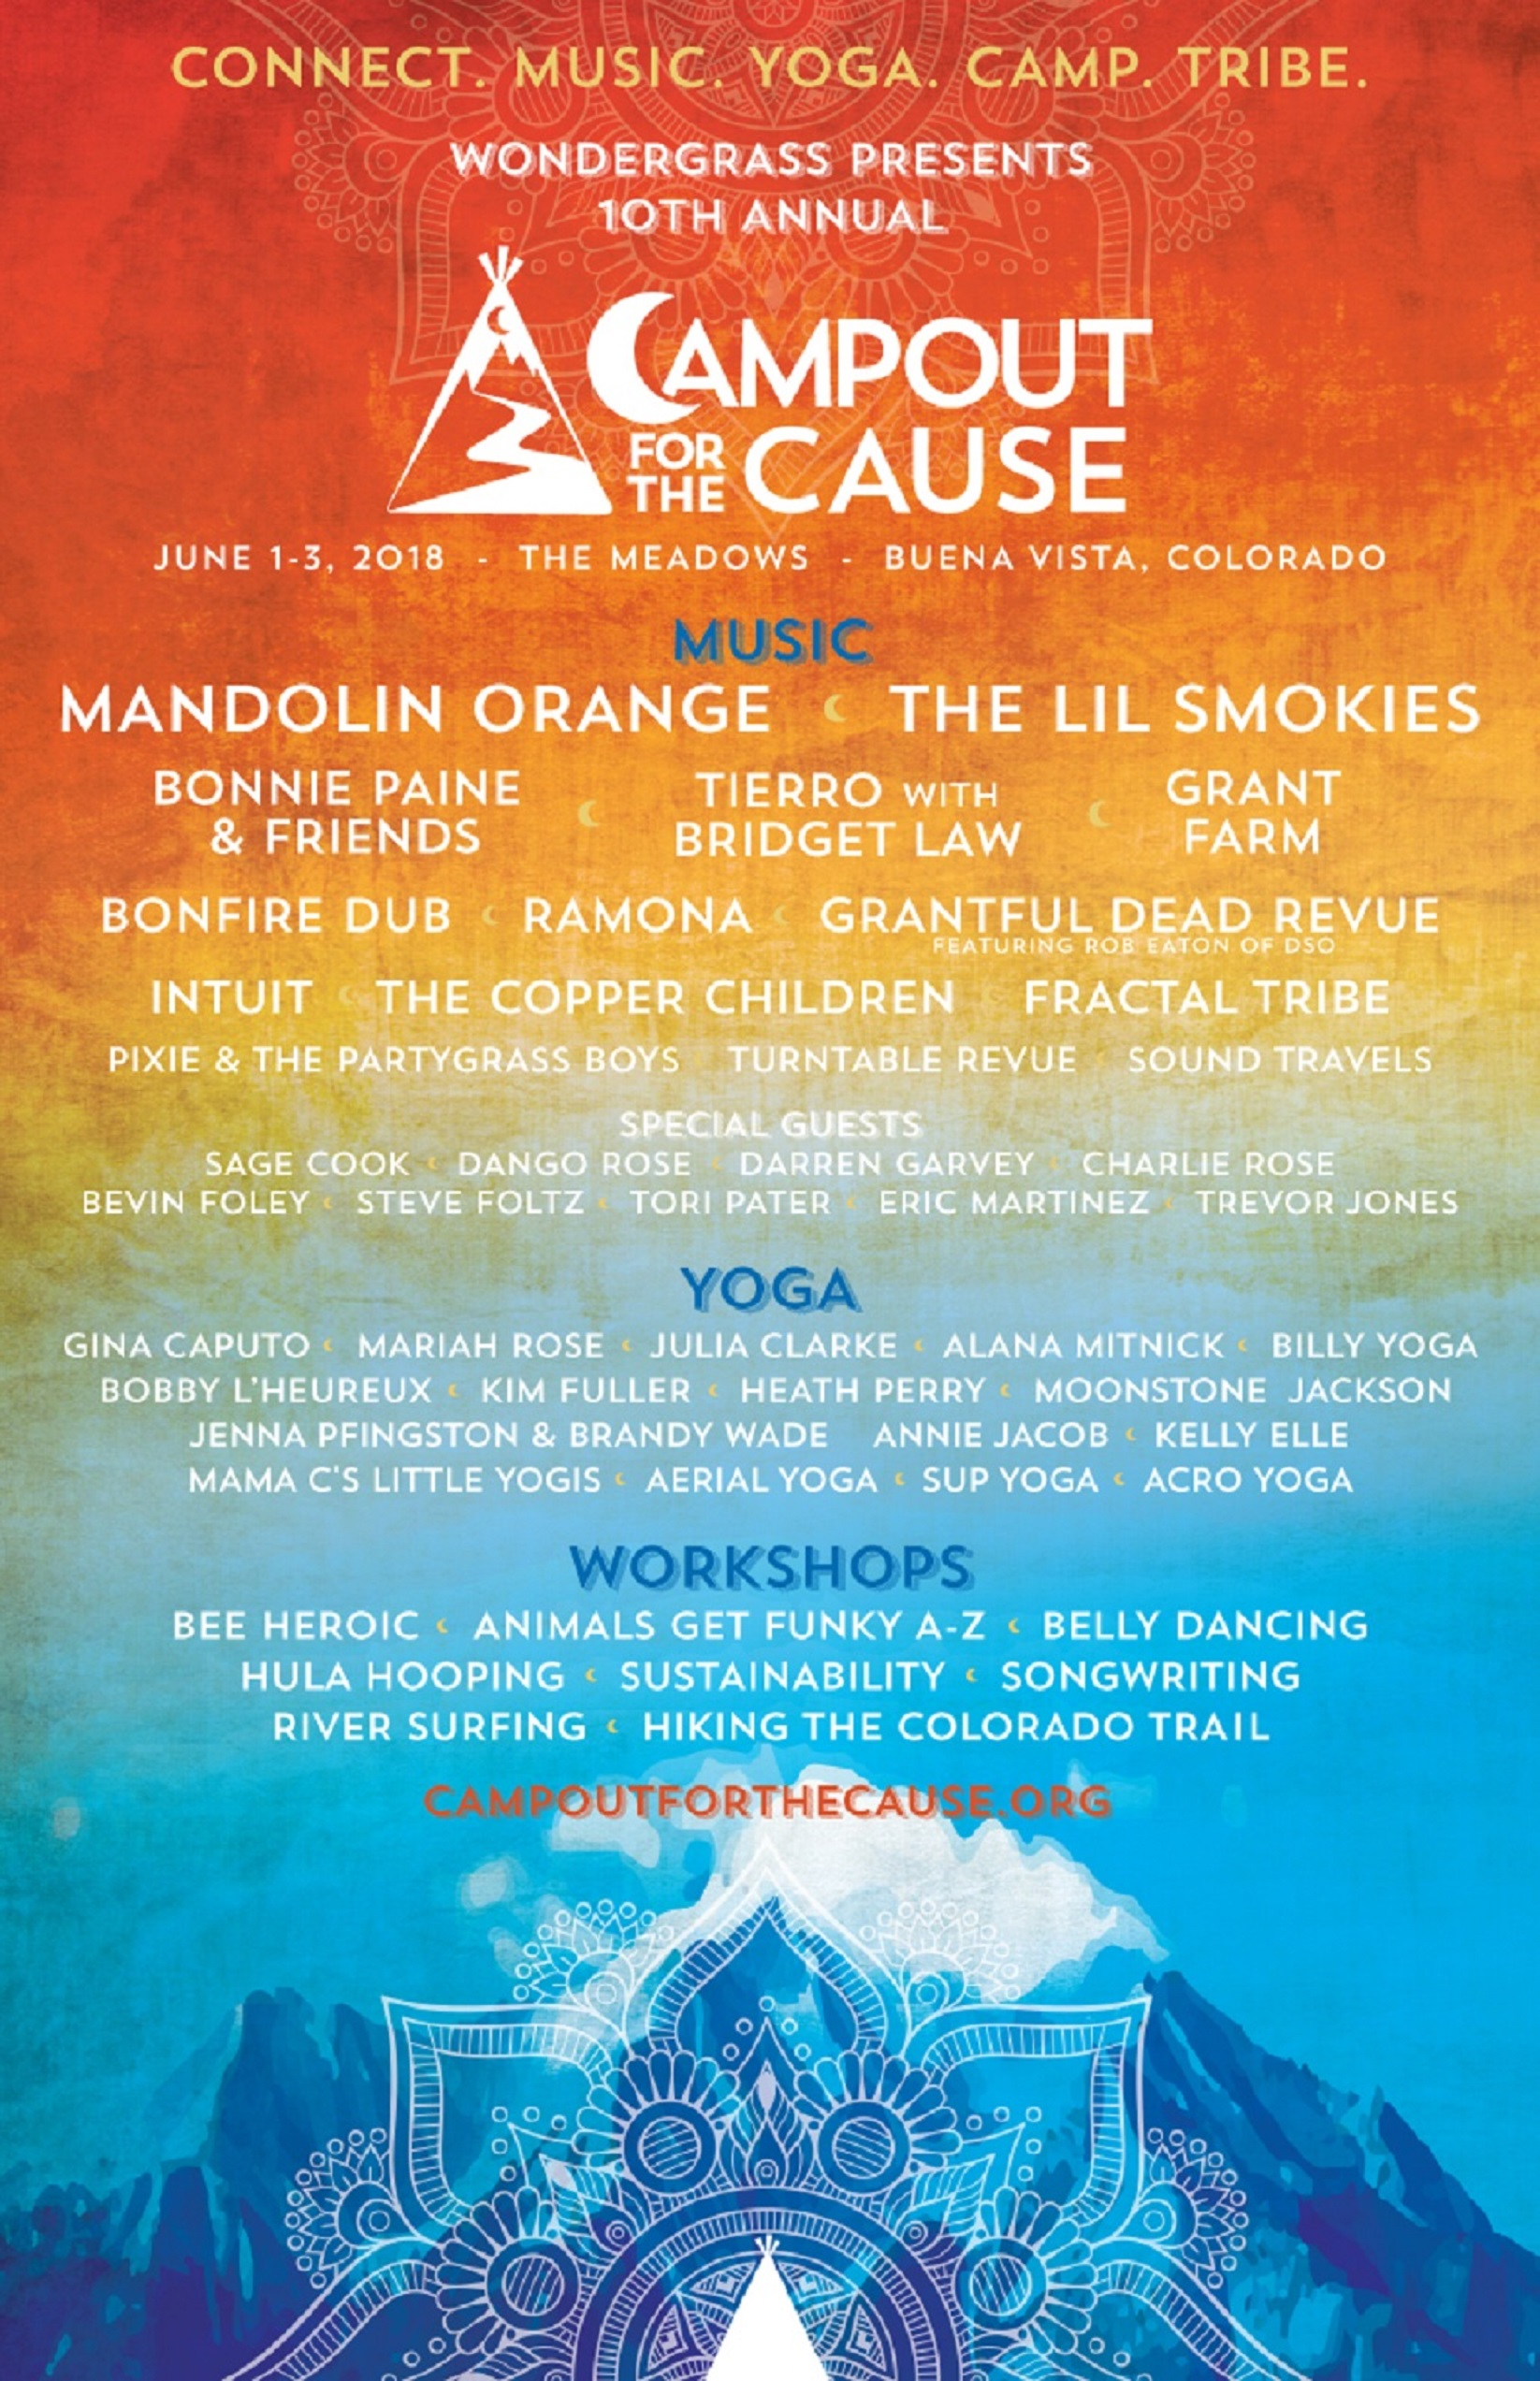 Campout for the Cause Announces 2018 Contributions, Initial 2019 Details